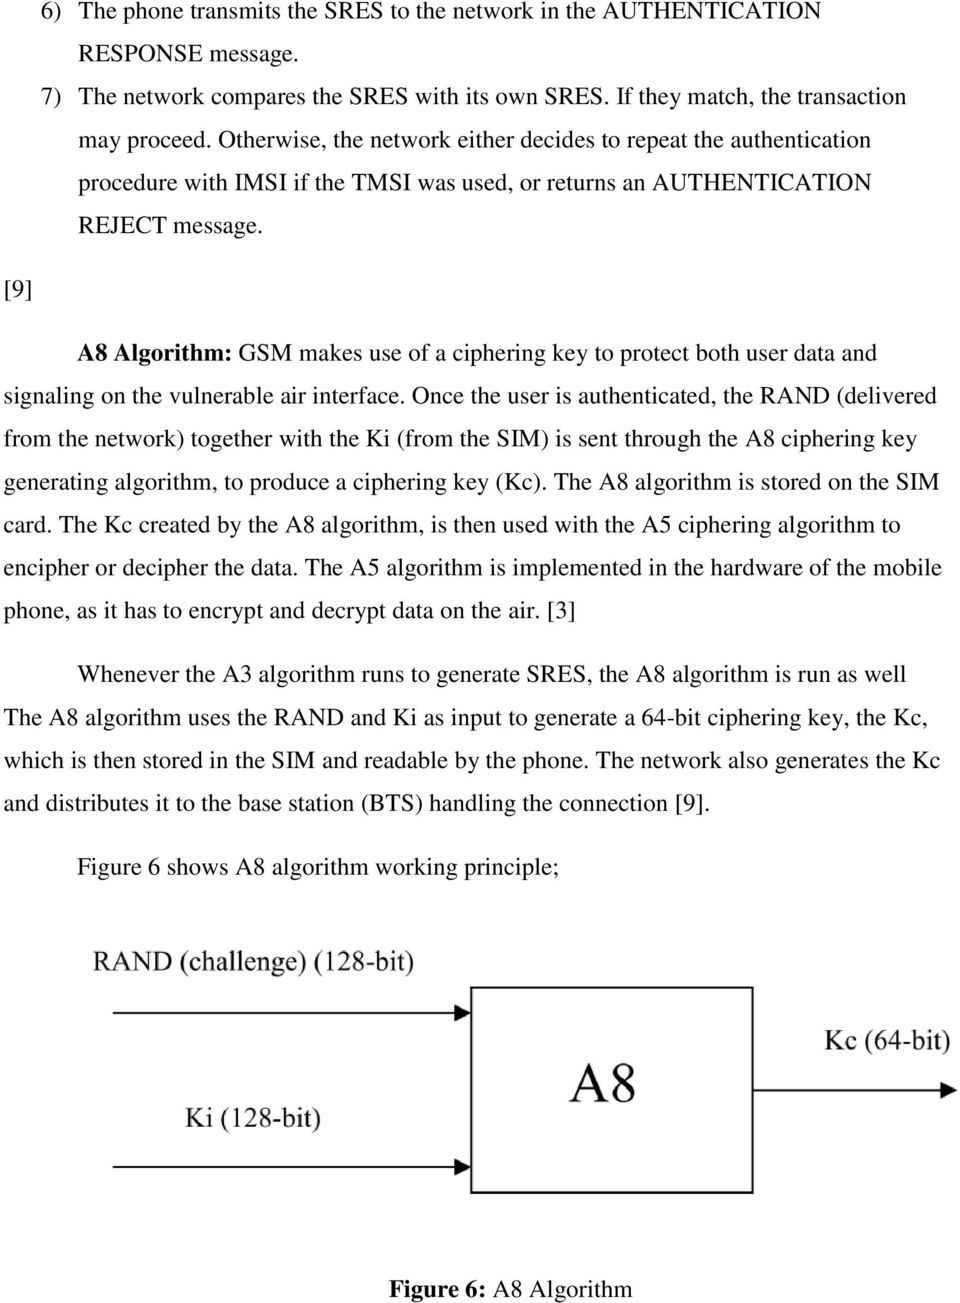 [9] A8 Algorithm: GSM makes use of a ciphering key to protect both user data and signaling on the vulnerable air interface.